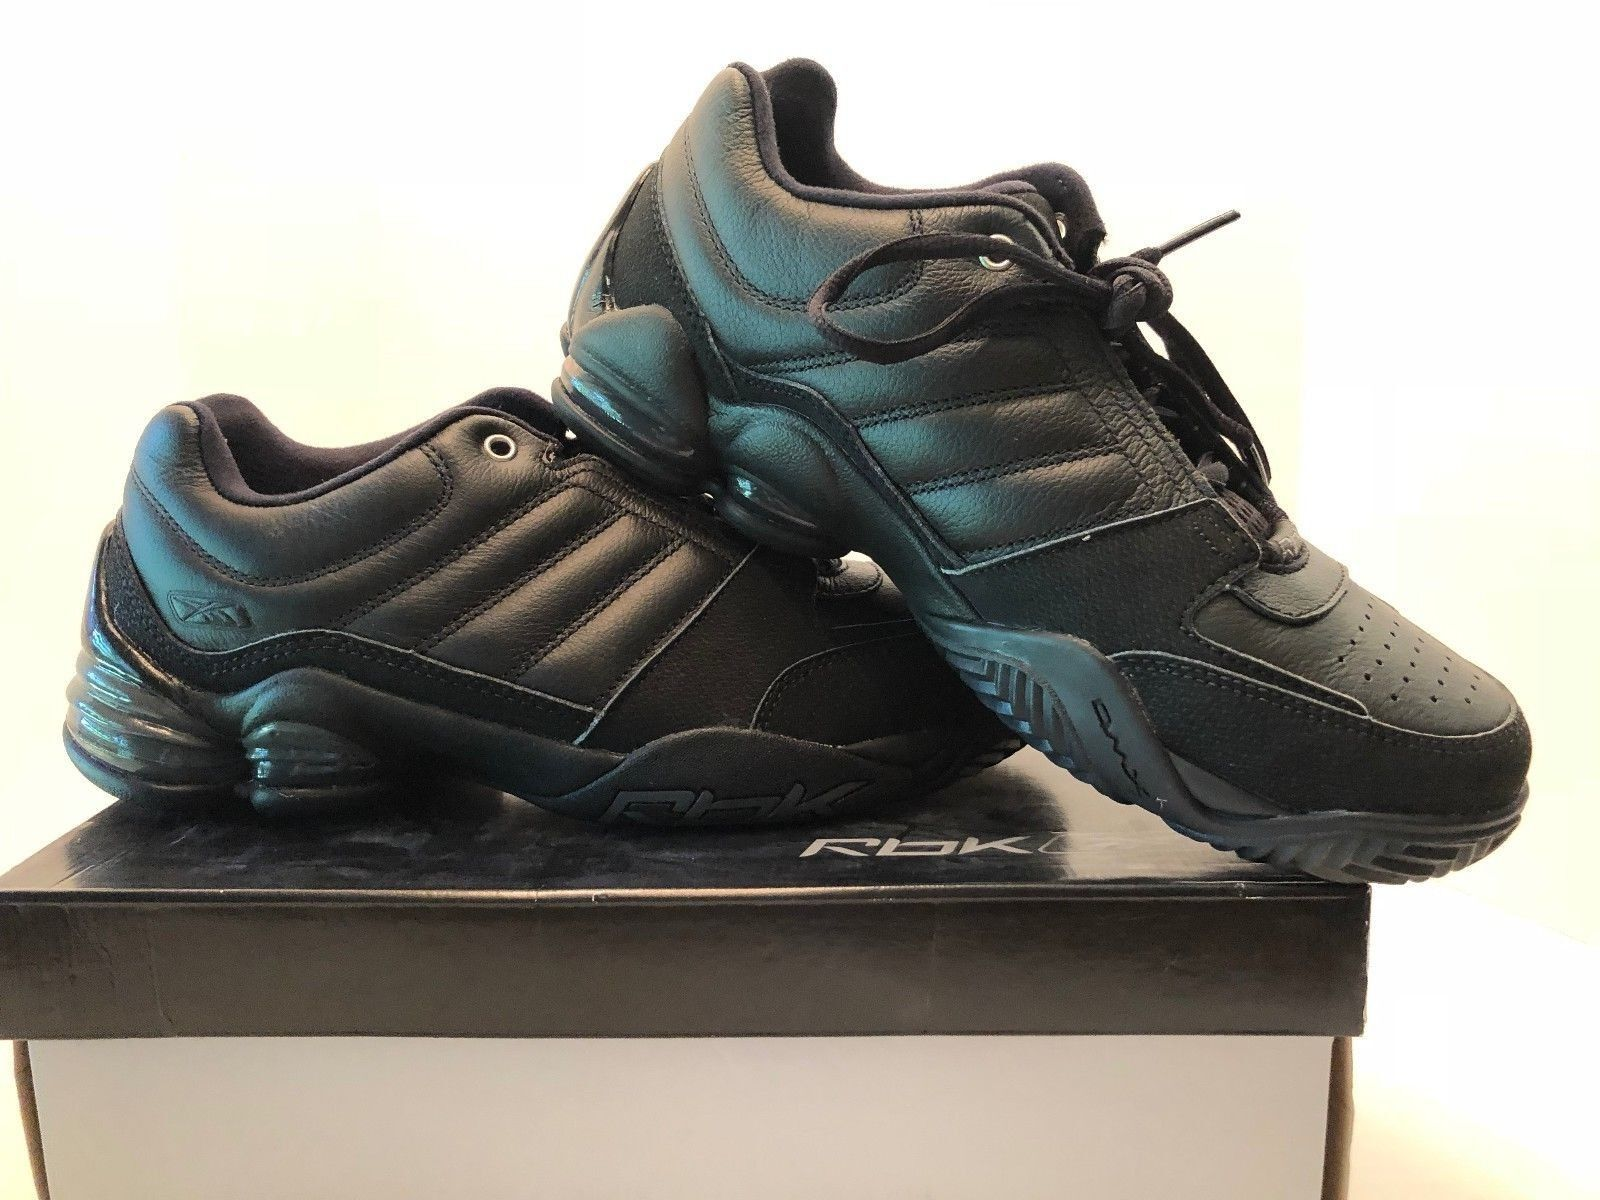 Men's New Reebok Black Leather Low Profile Basketball Shoes with Silver Trim